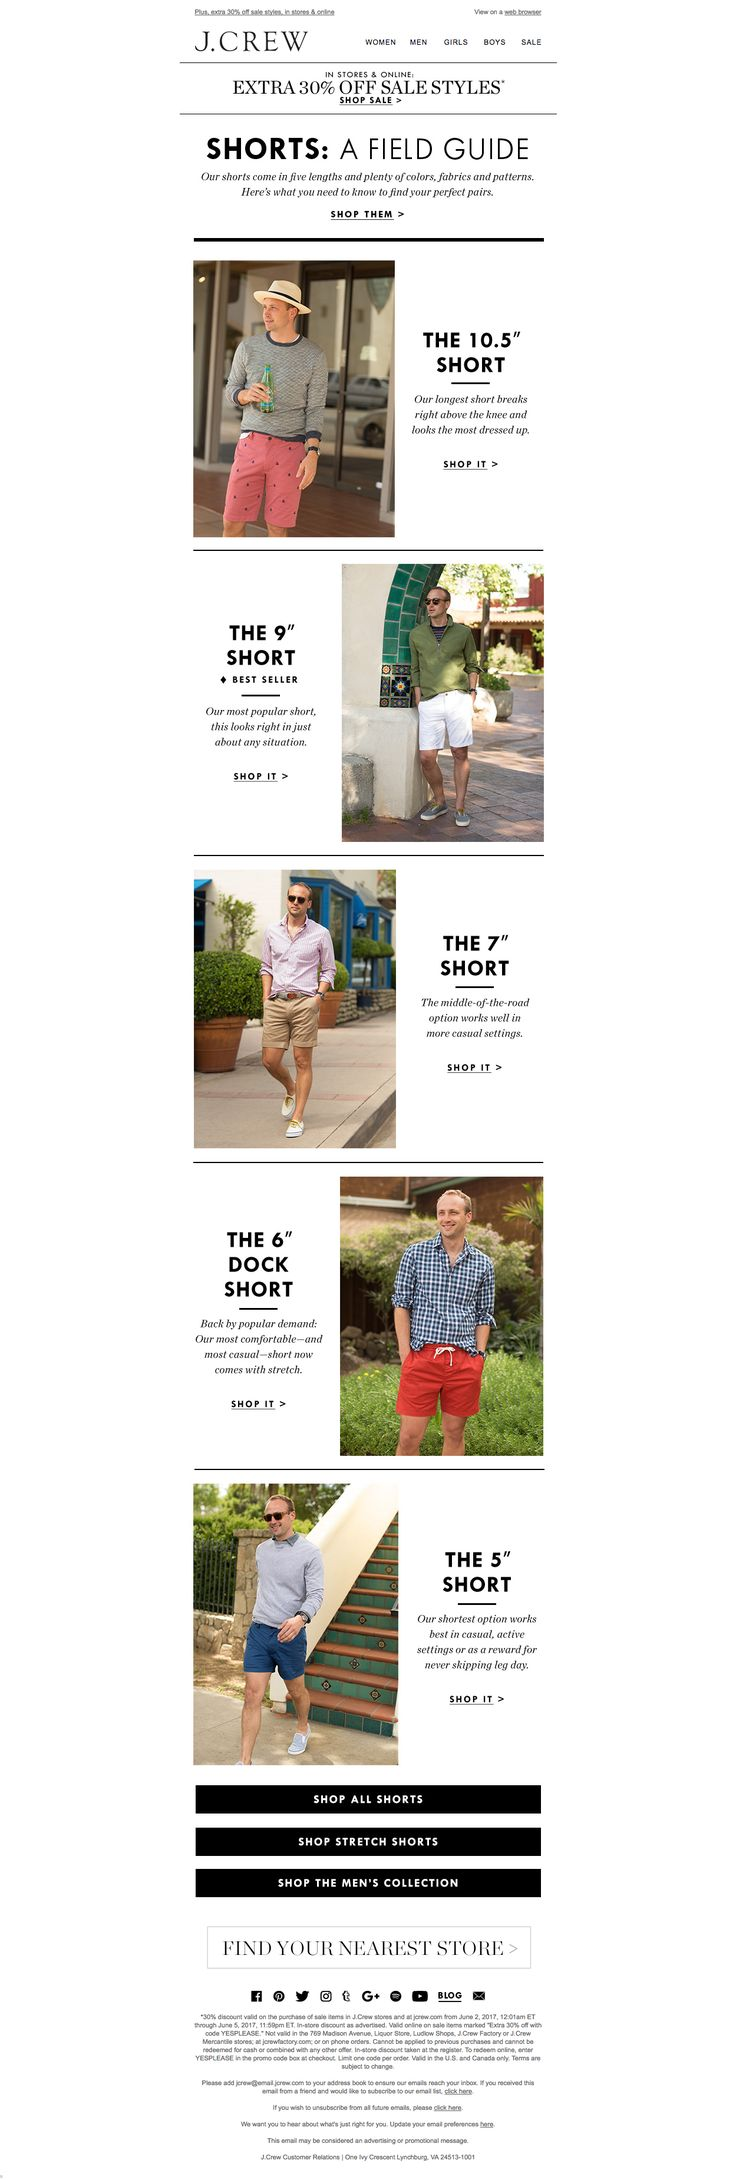 That's a whole lotta social buttons to fit into this email footer, but J. Crew pulls it off with a simple, all-black design. Sleek email footer design work! #emaildesign Click for more on email footer design best practices.